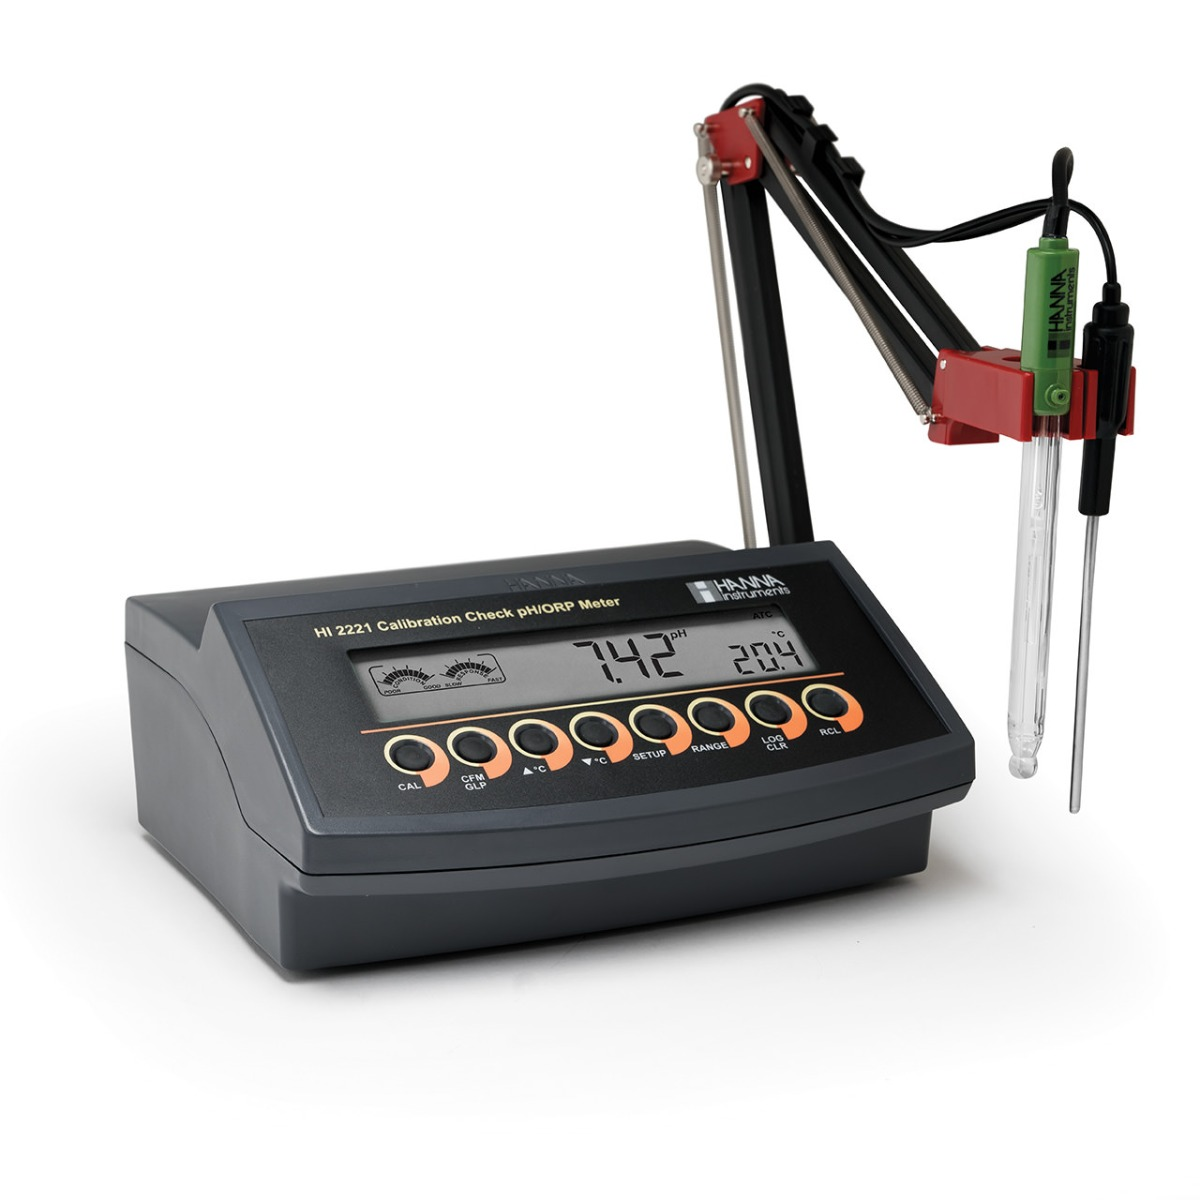 Benchtop pH/mV Meter with CAL Check™ - HI2221